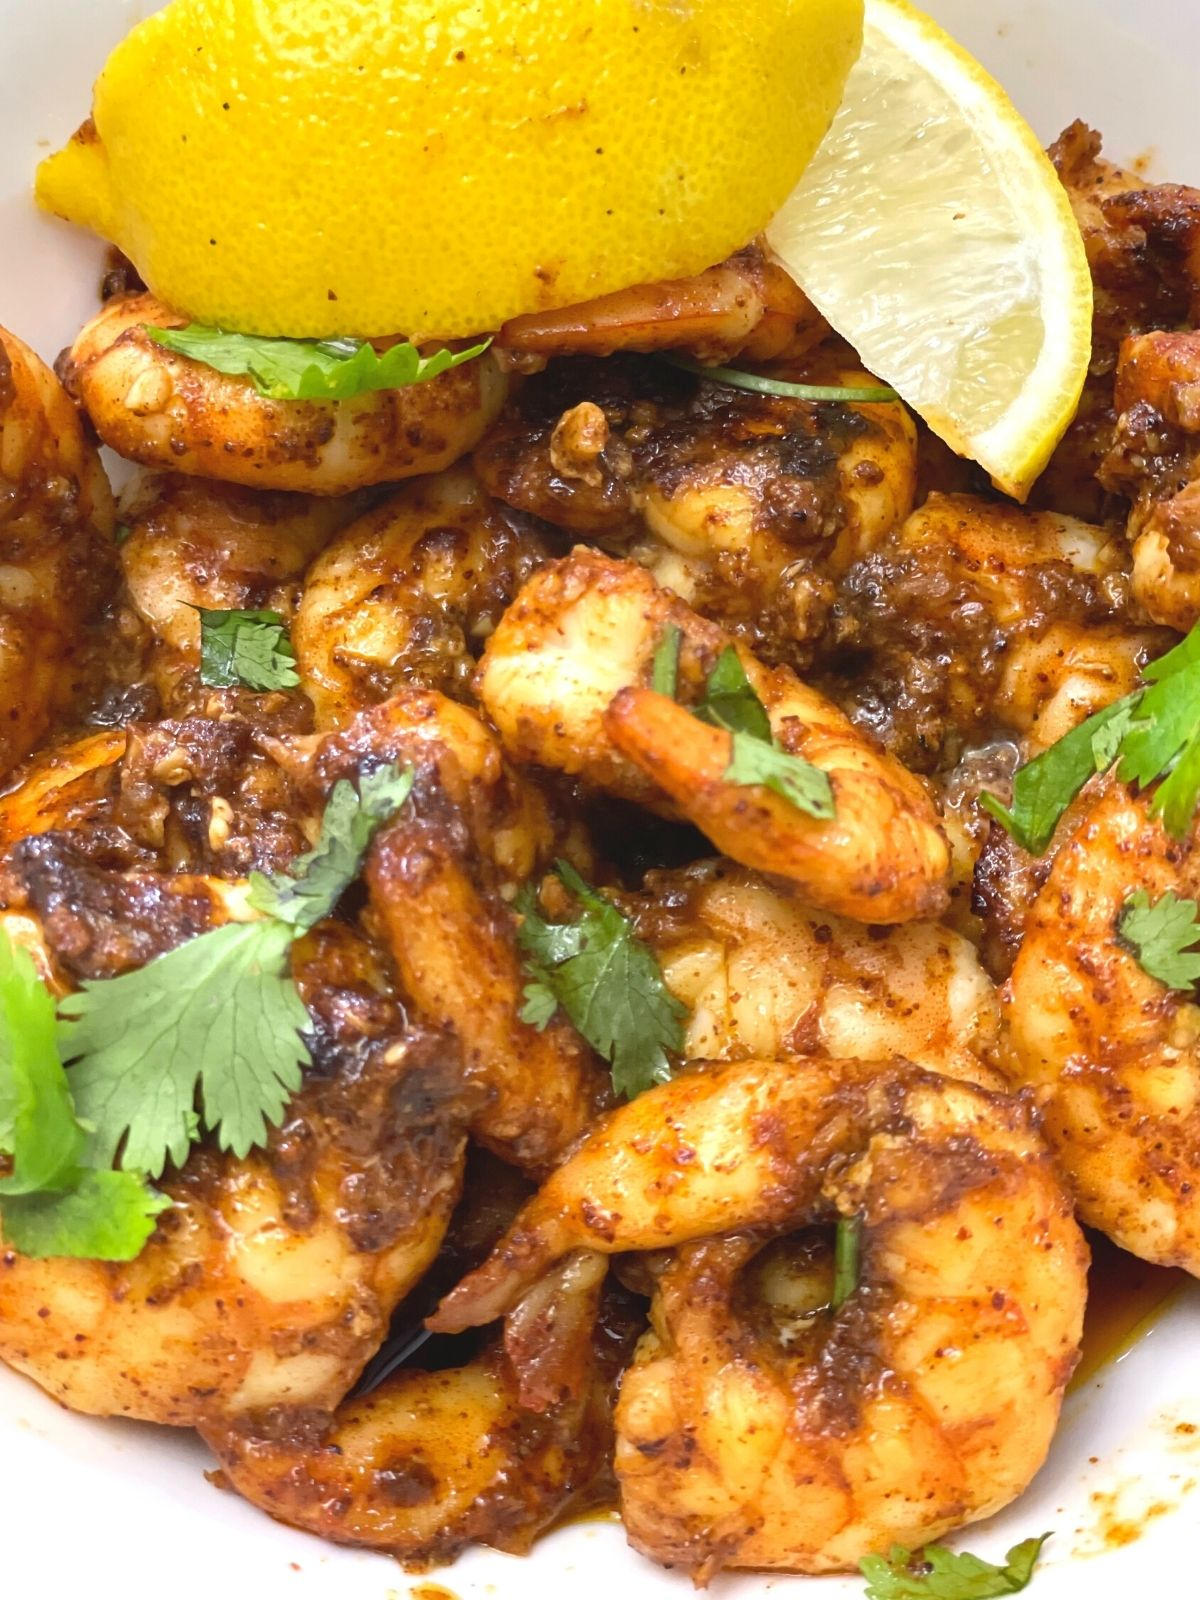 A close up of a bowl of blackened shrimp topped with cilantro. Lemon wedges are used as a garnish.